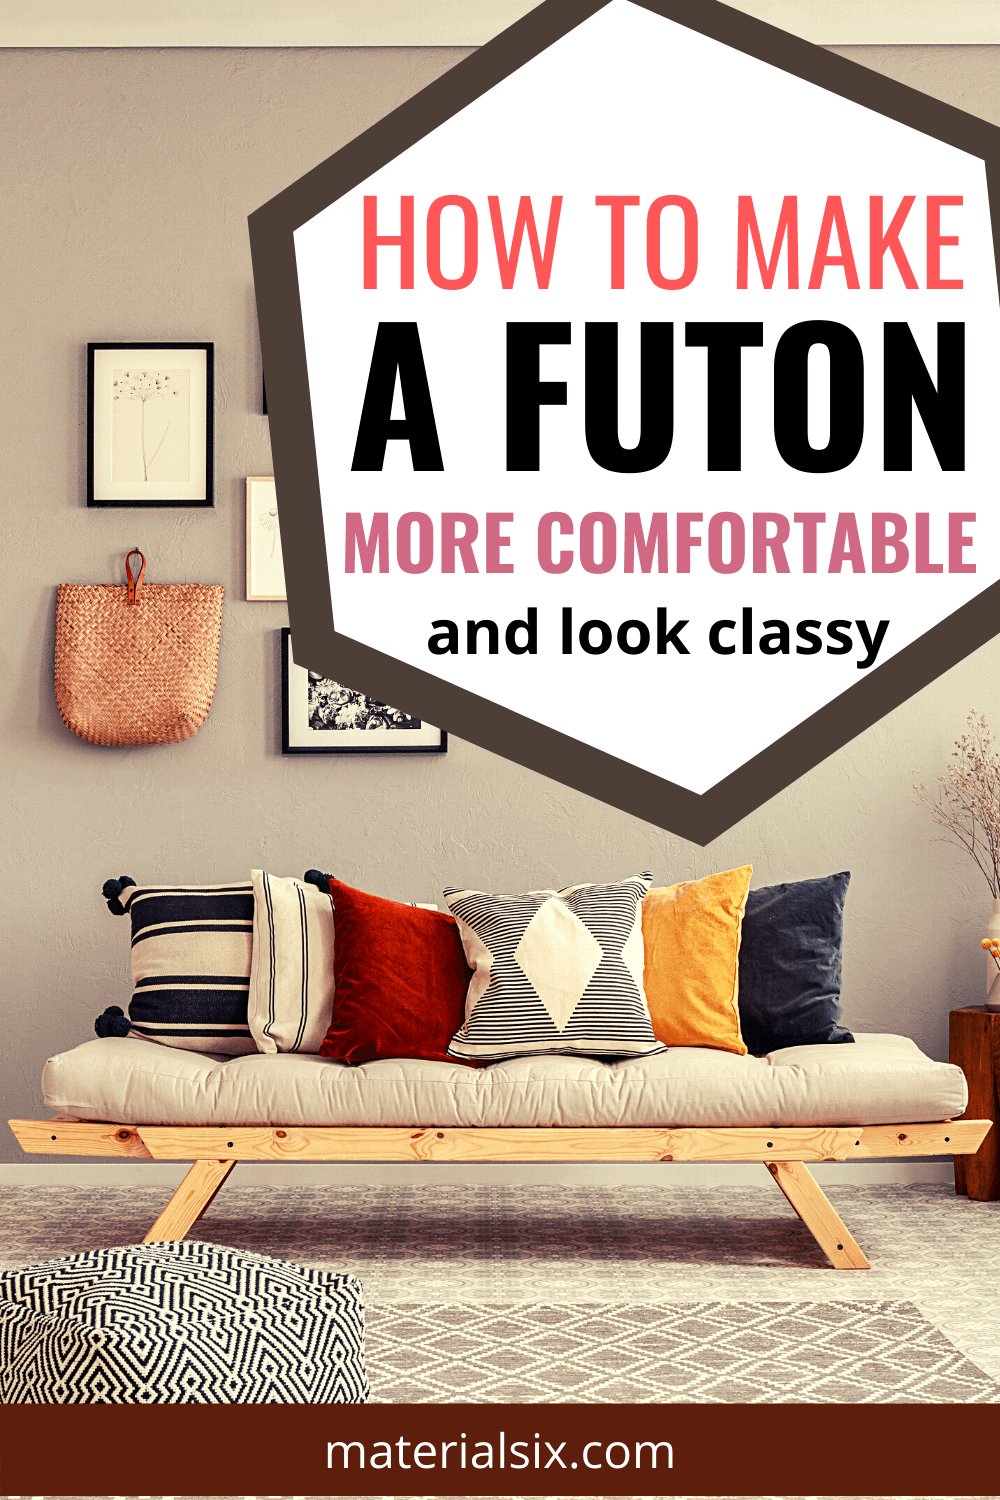 how to make a futon more comfortable and look classy